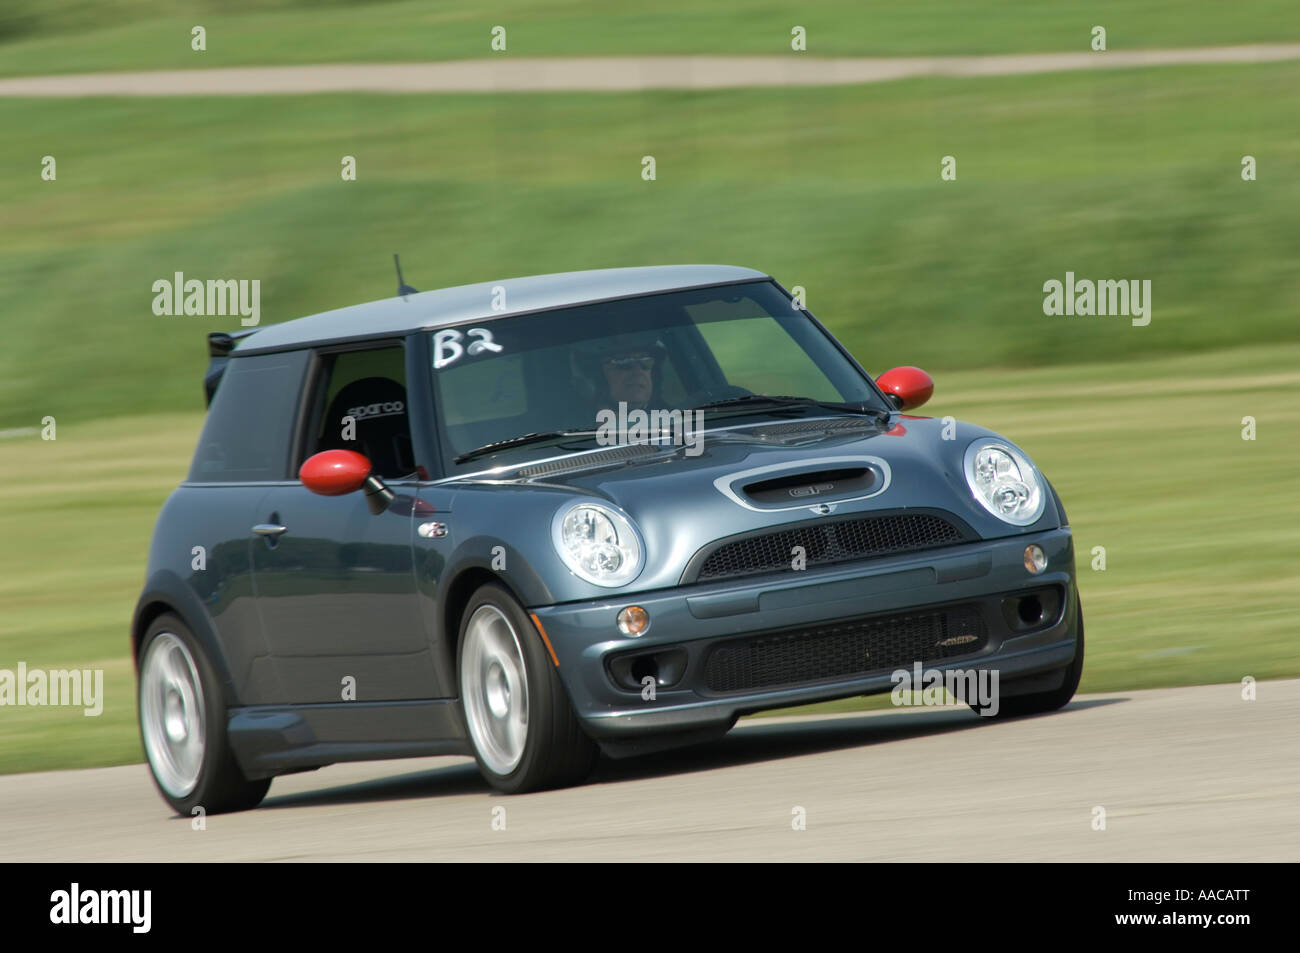 Mini Cooper S John Cooper Works Gp At A Track Day Event Stock Photo